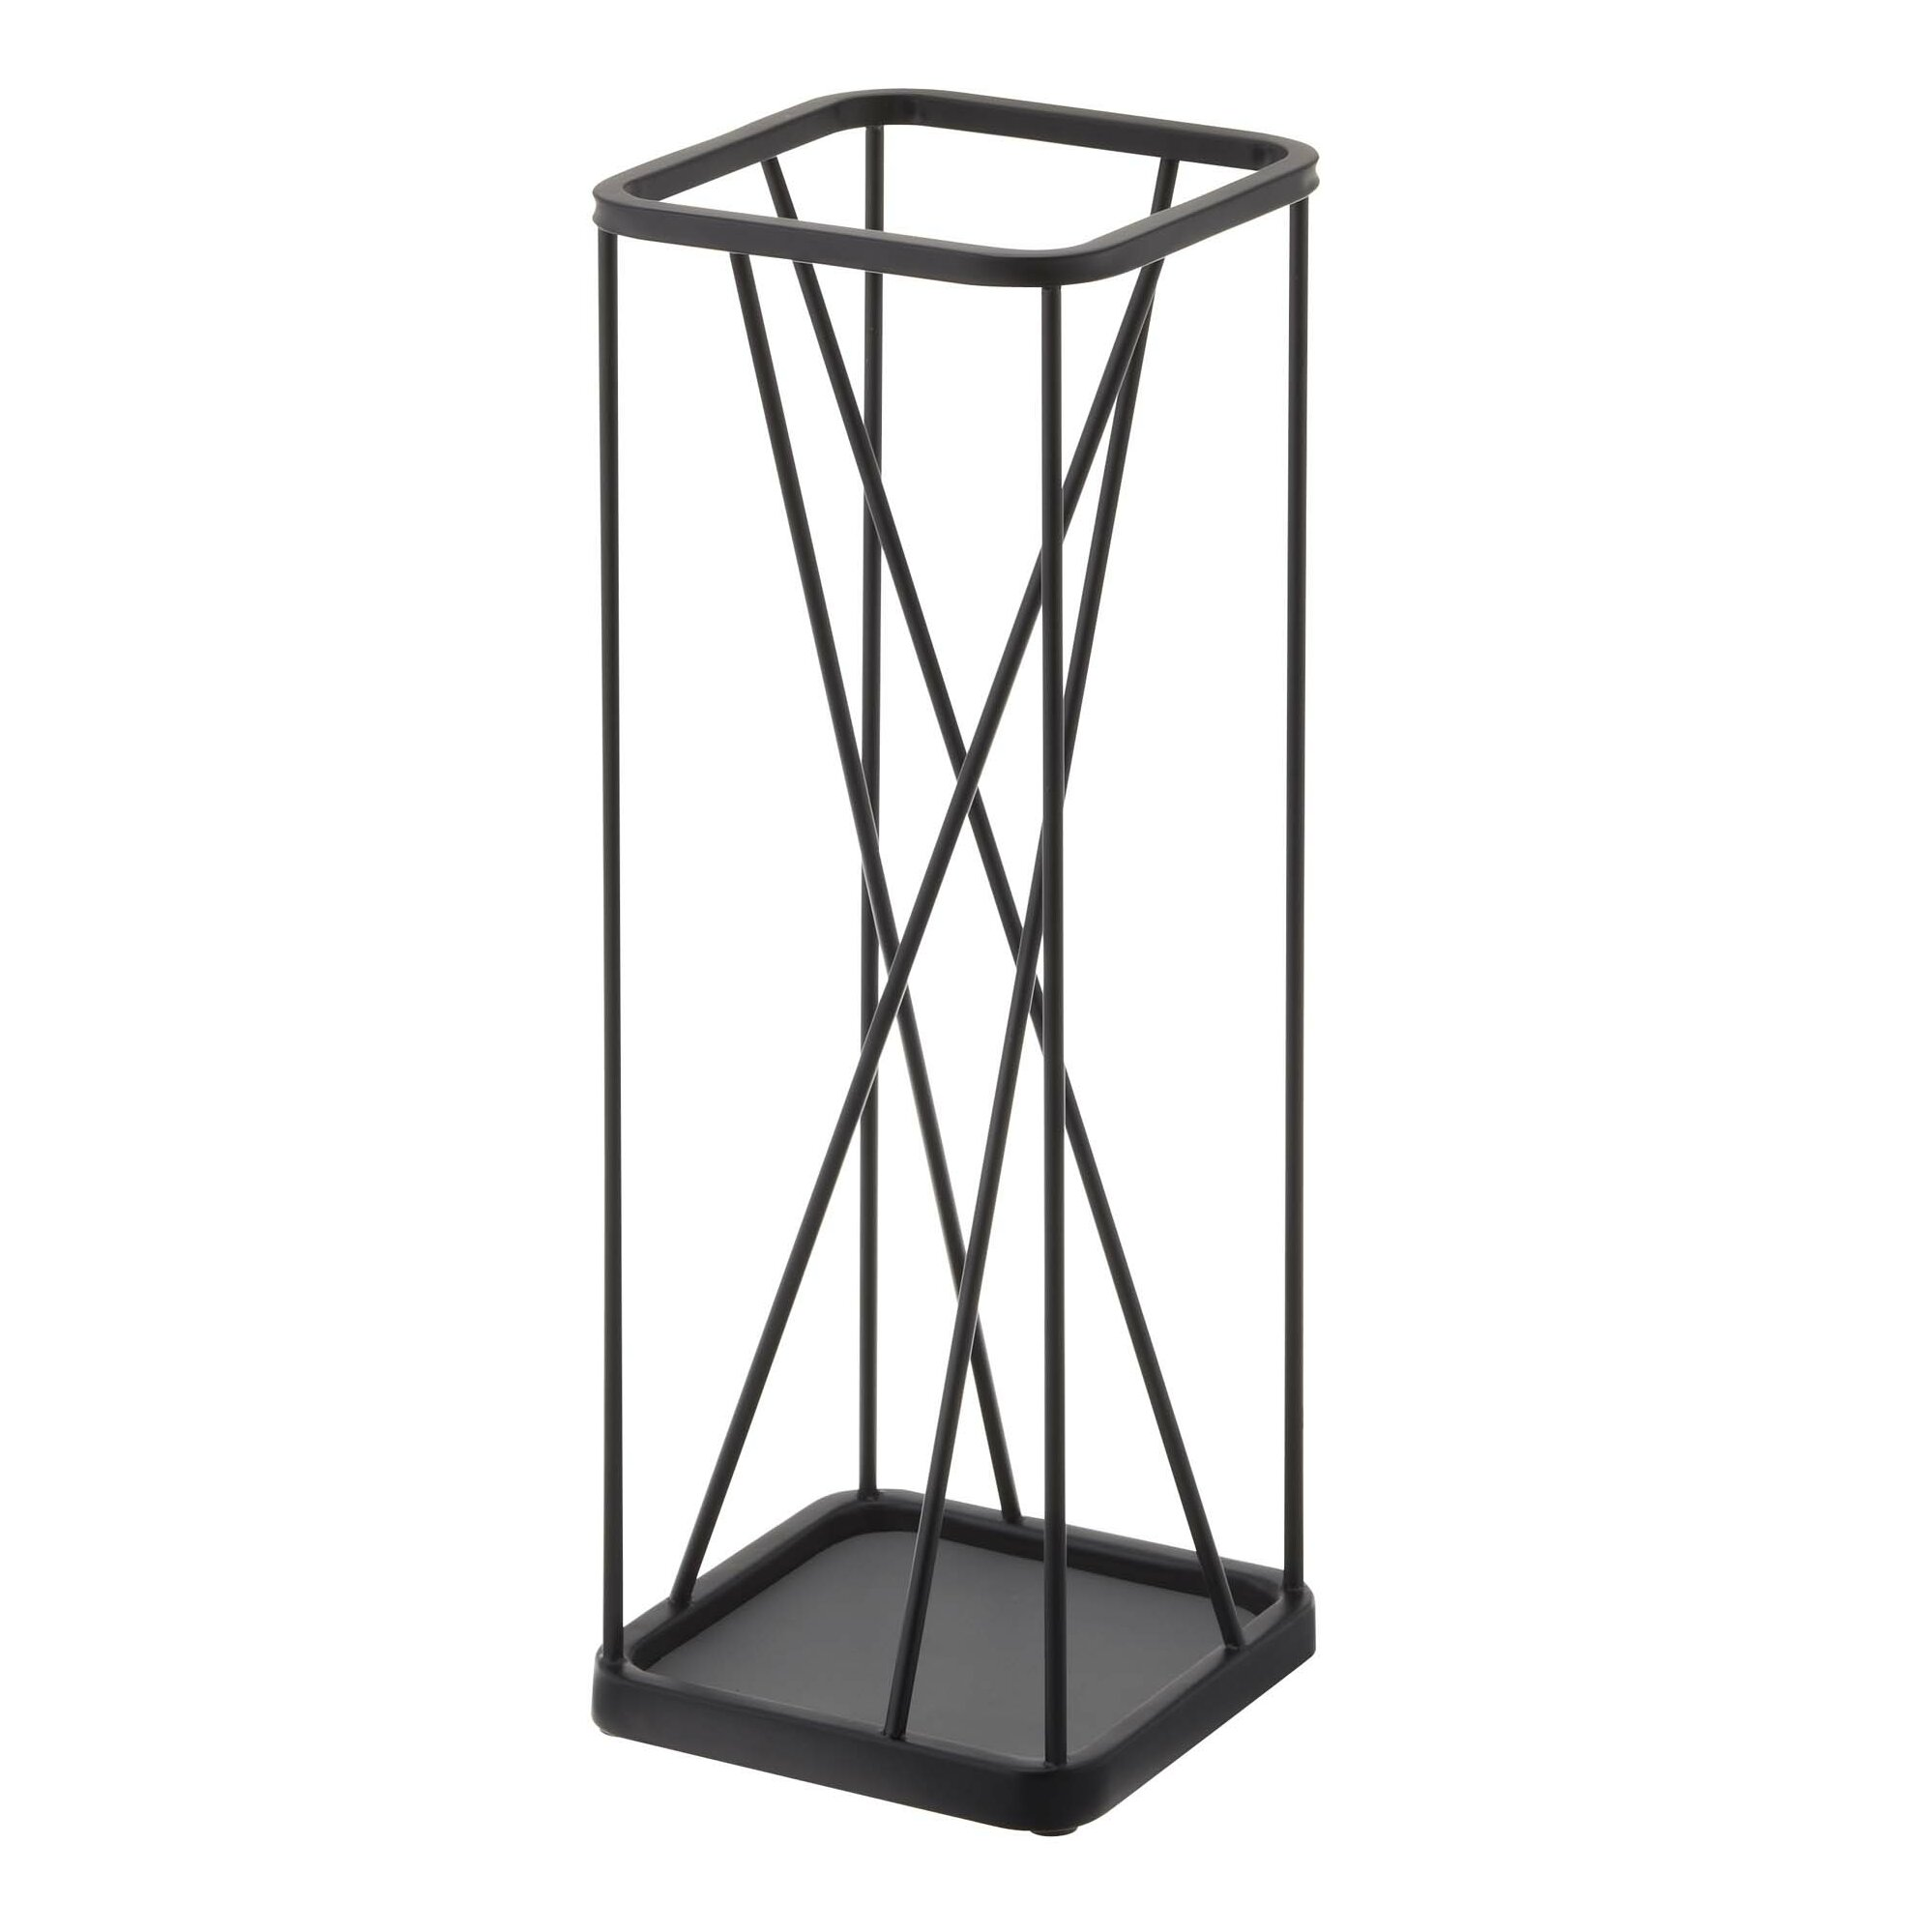 Yamazaki USA Nine Square Umbrella Stand & Reviews